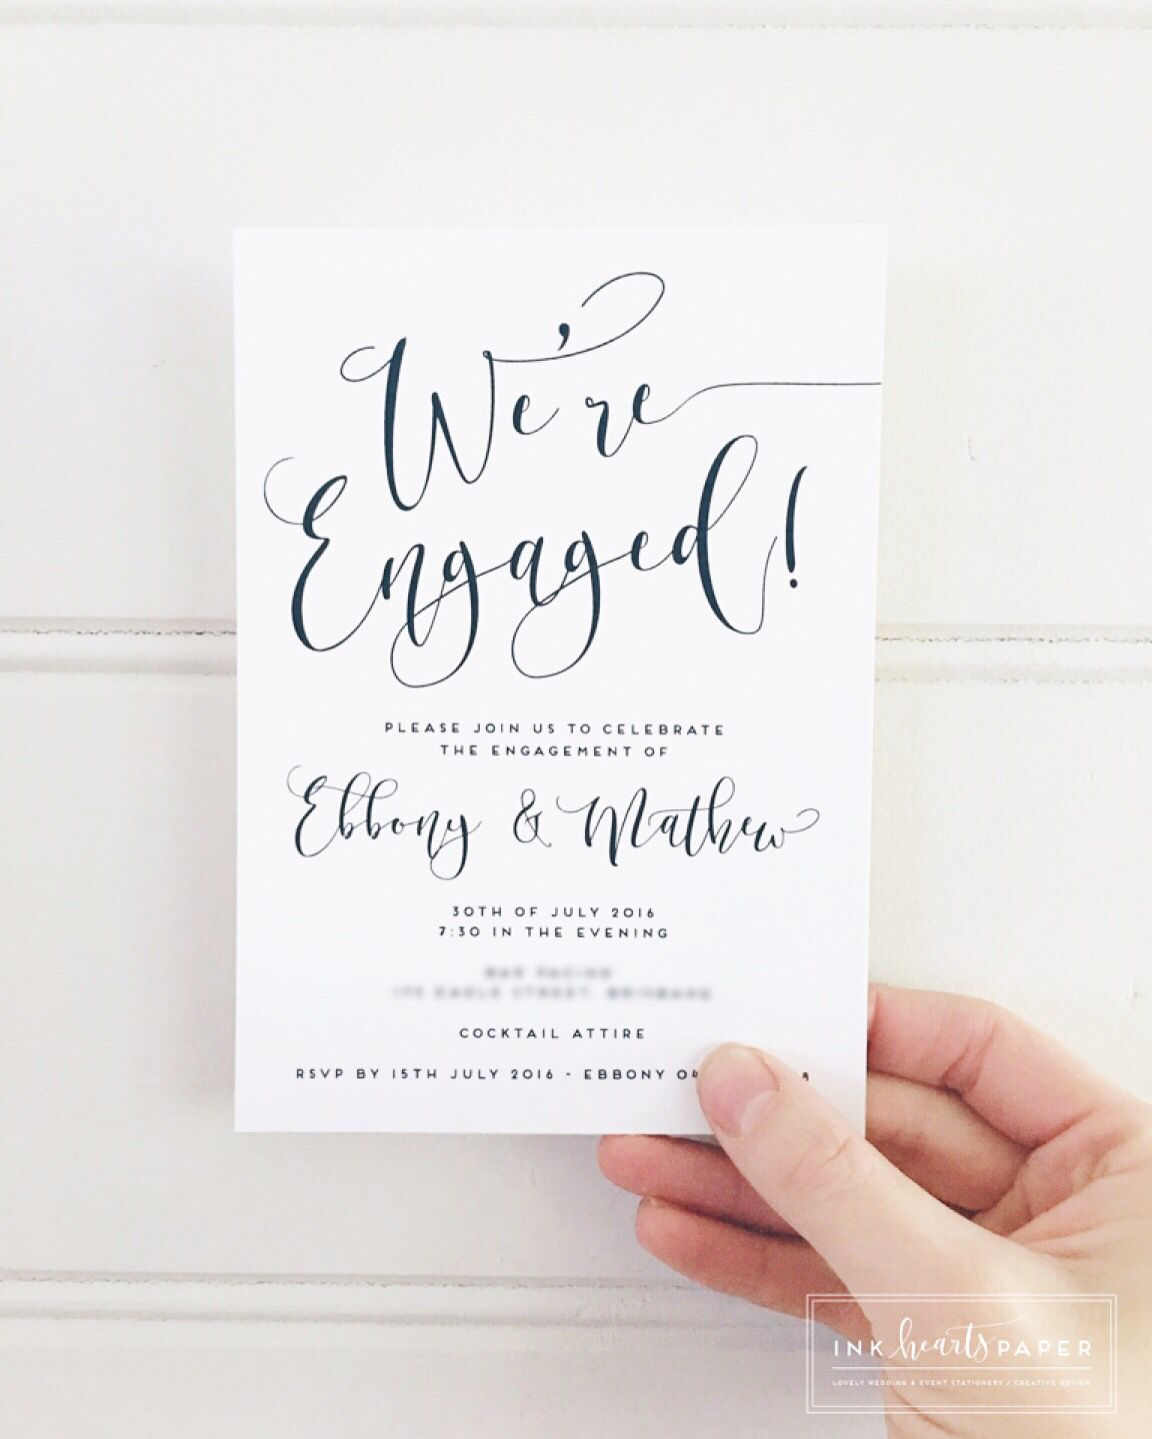 Engagement Invitations Wedding Stationery Black And White Calligraphy Modern Simple Professional Cly